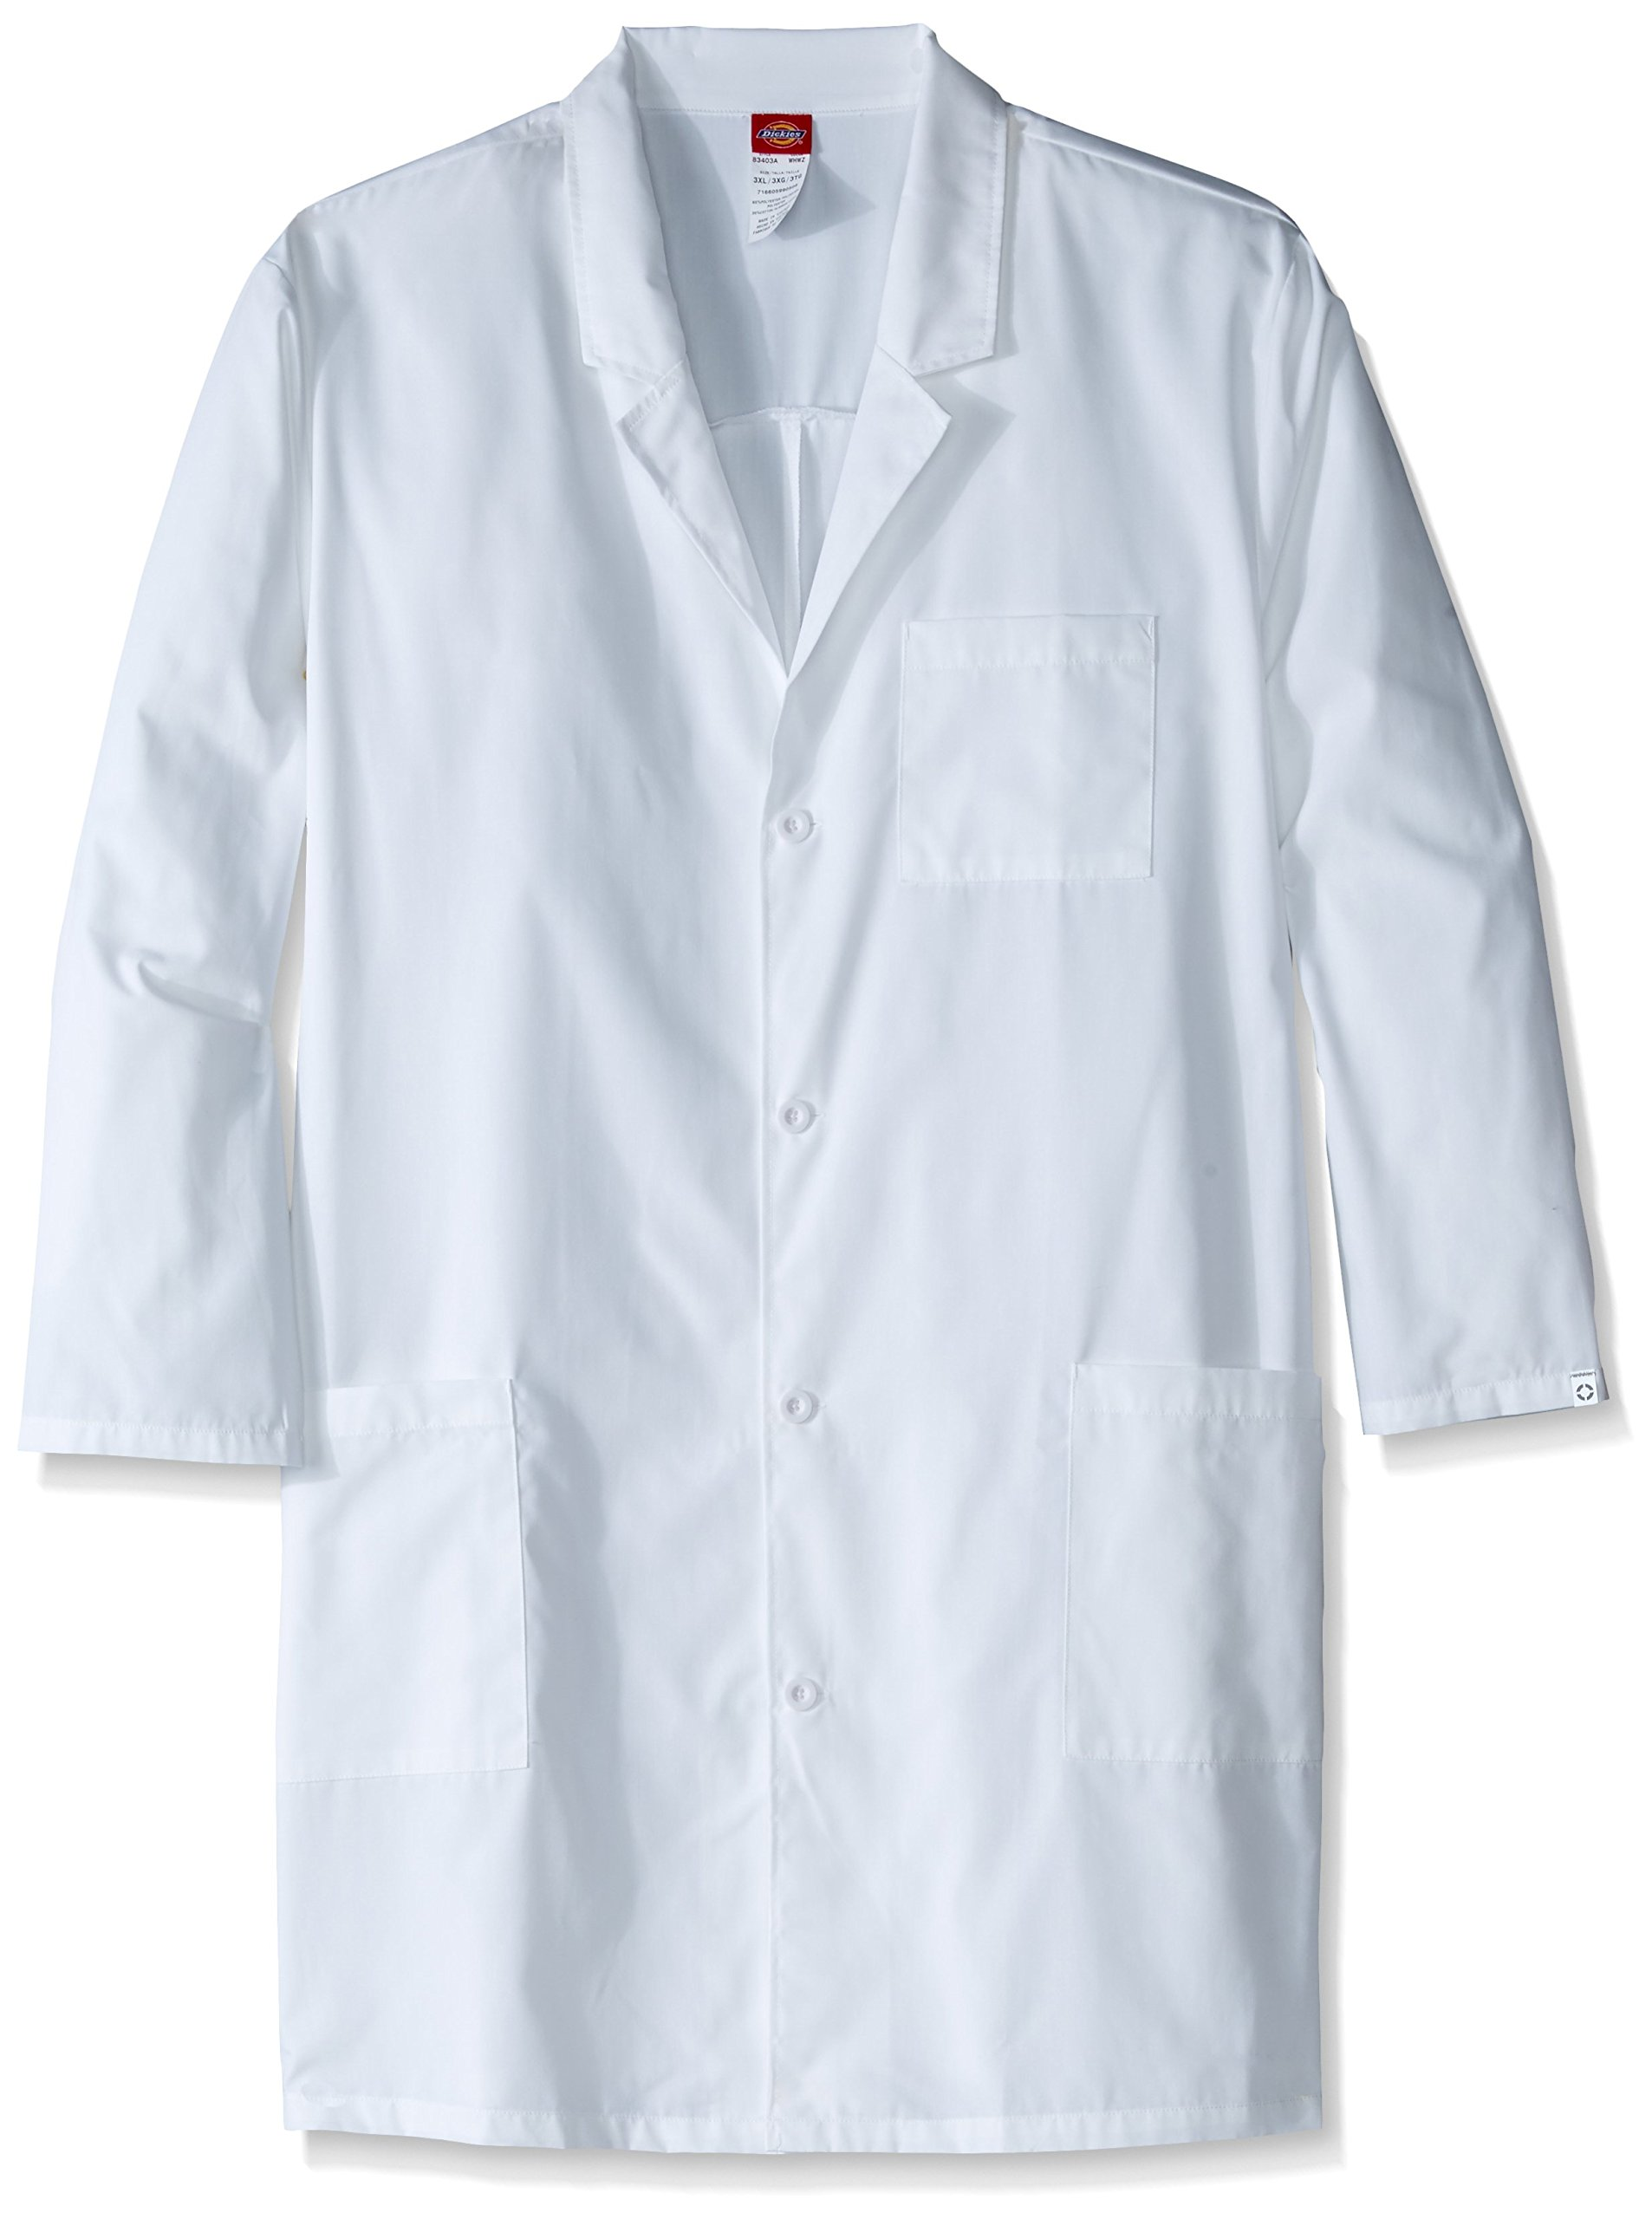 Dickies Men's Big and Tall EDS Professional with 40 inch Unisex Lab Coat, White, 4X-Large